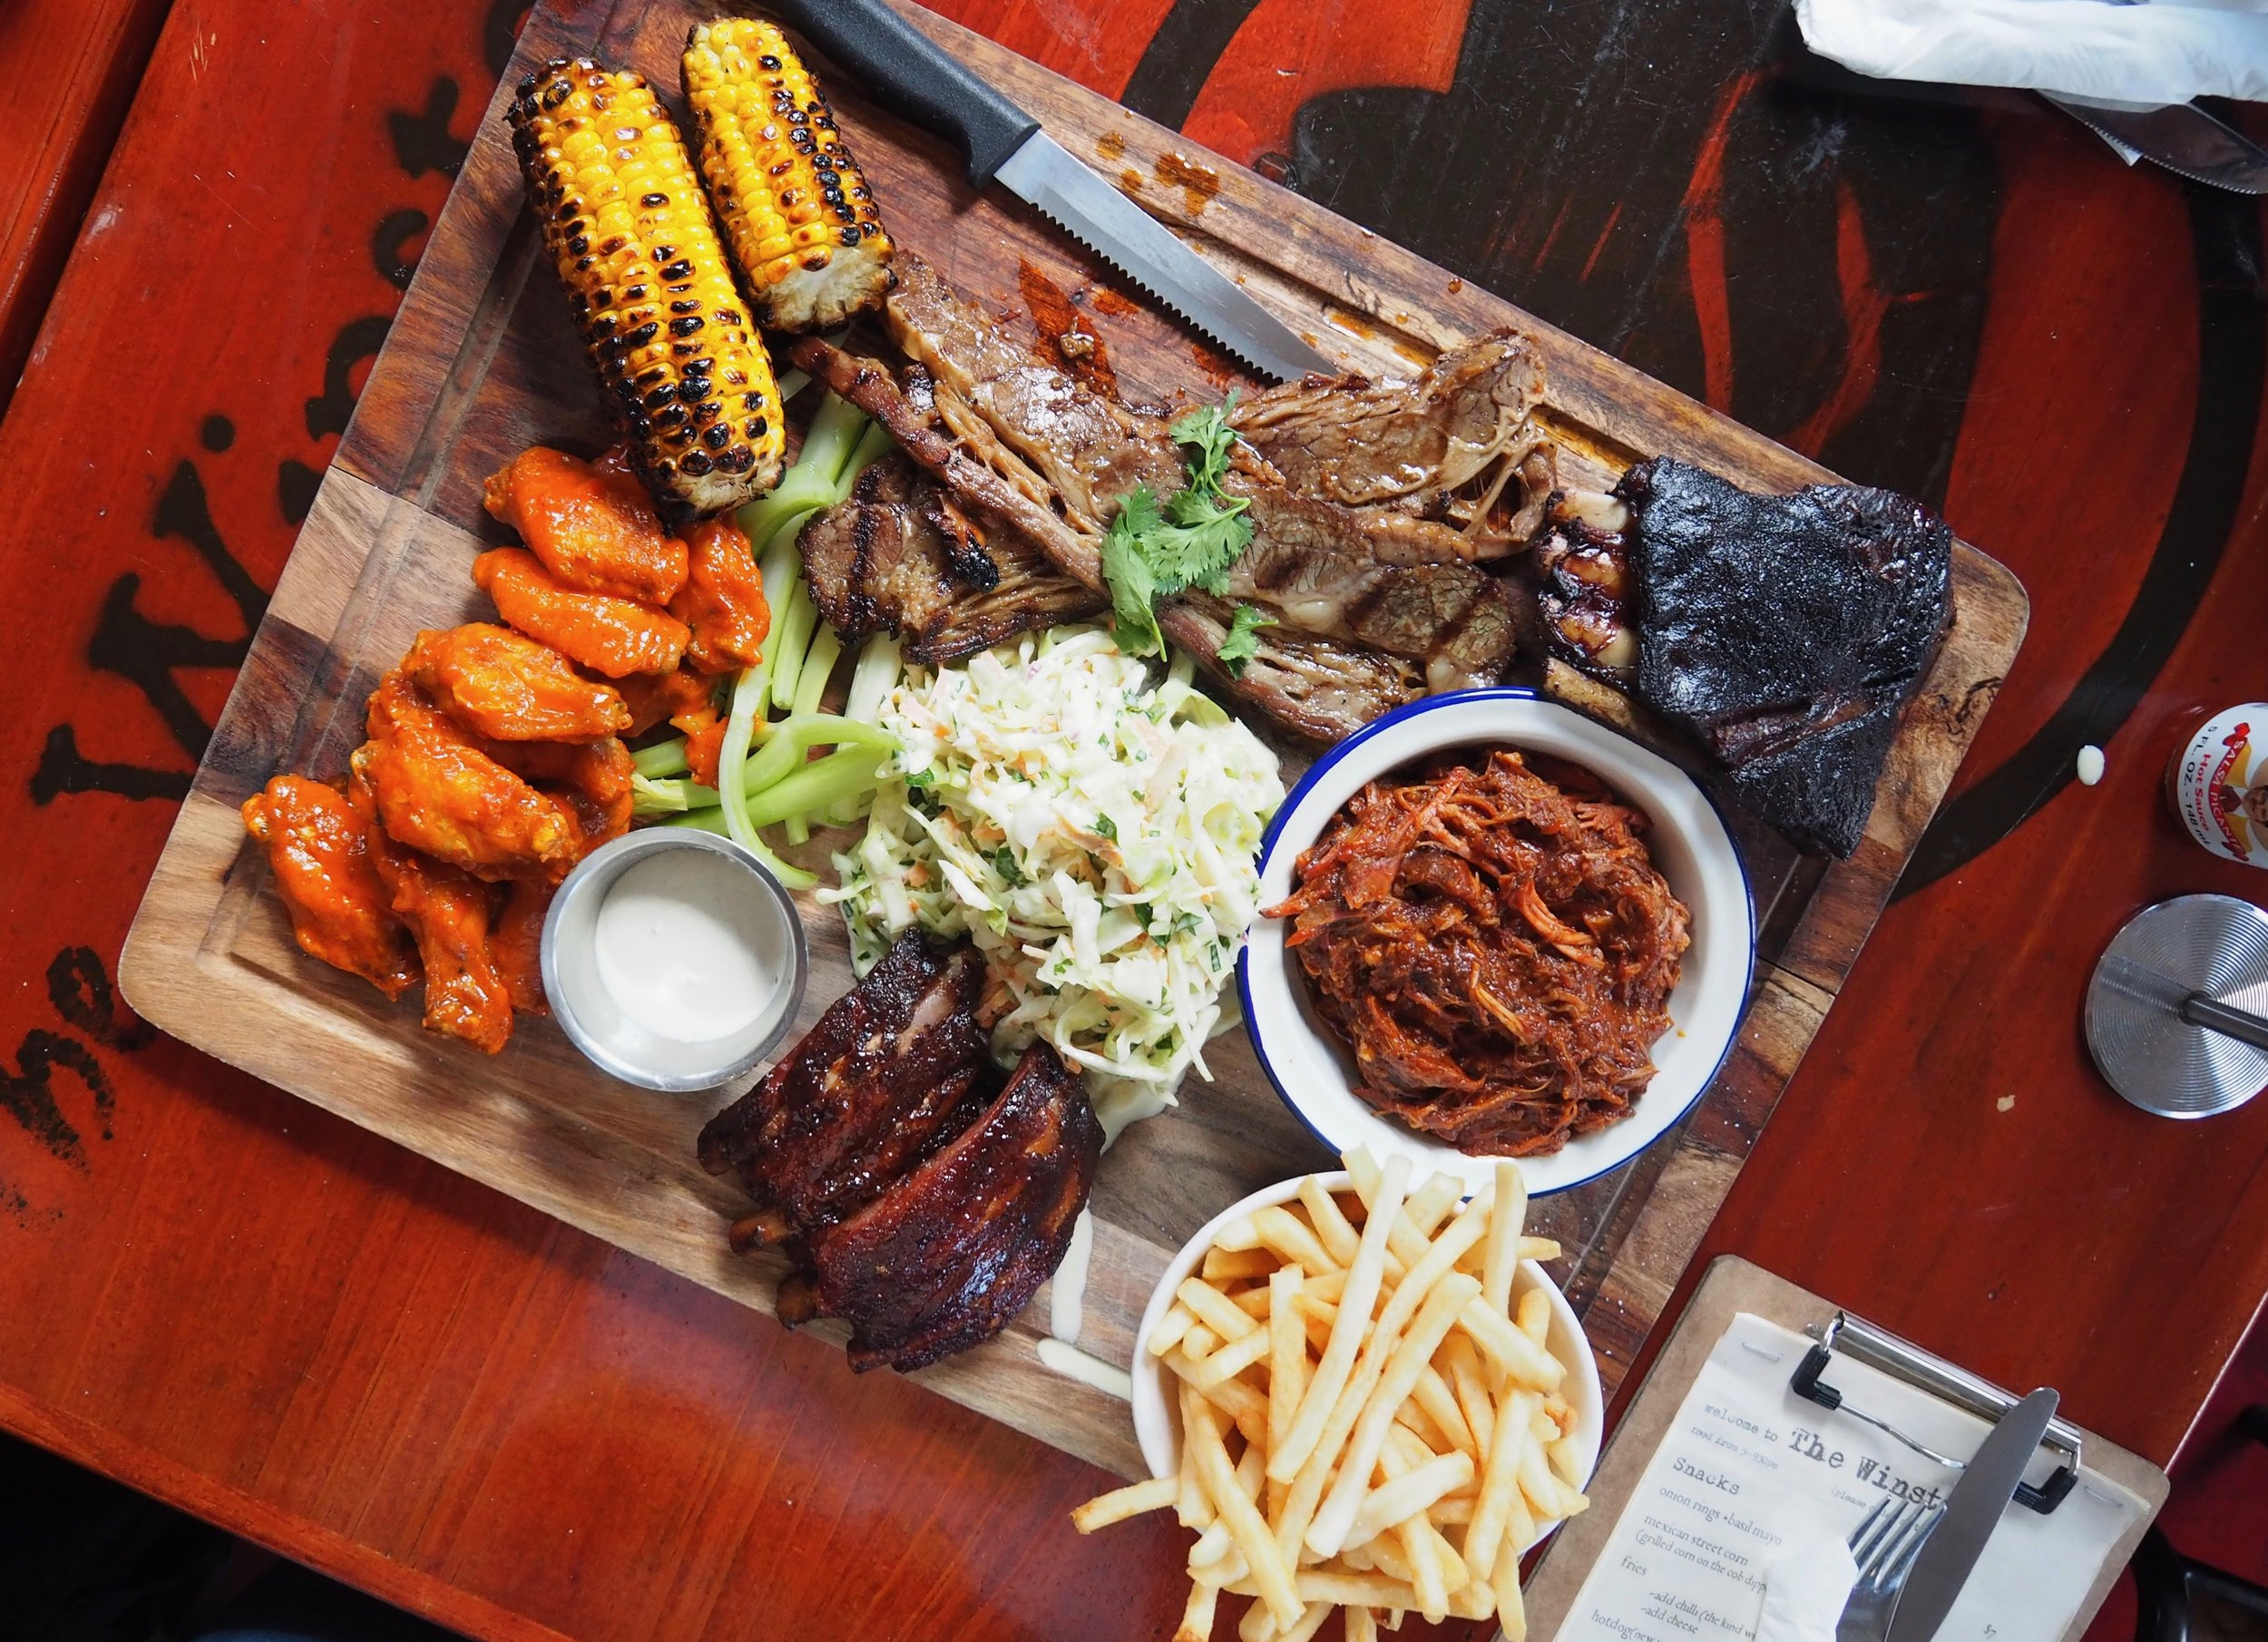 The BIG boy platter! Designed to share or to be a total glutton. Baby back ribs, buffalo wings, pulled pork, lamb ribs, maui brisket, fries, coleslaw and grilled corn. DANG!